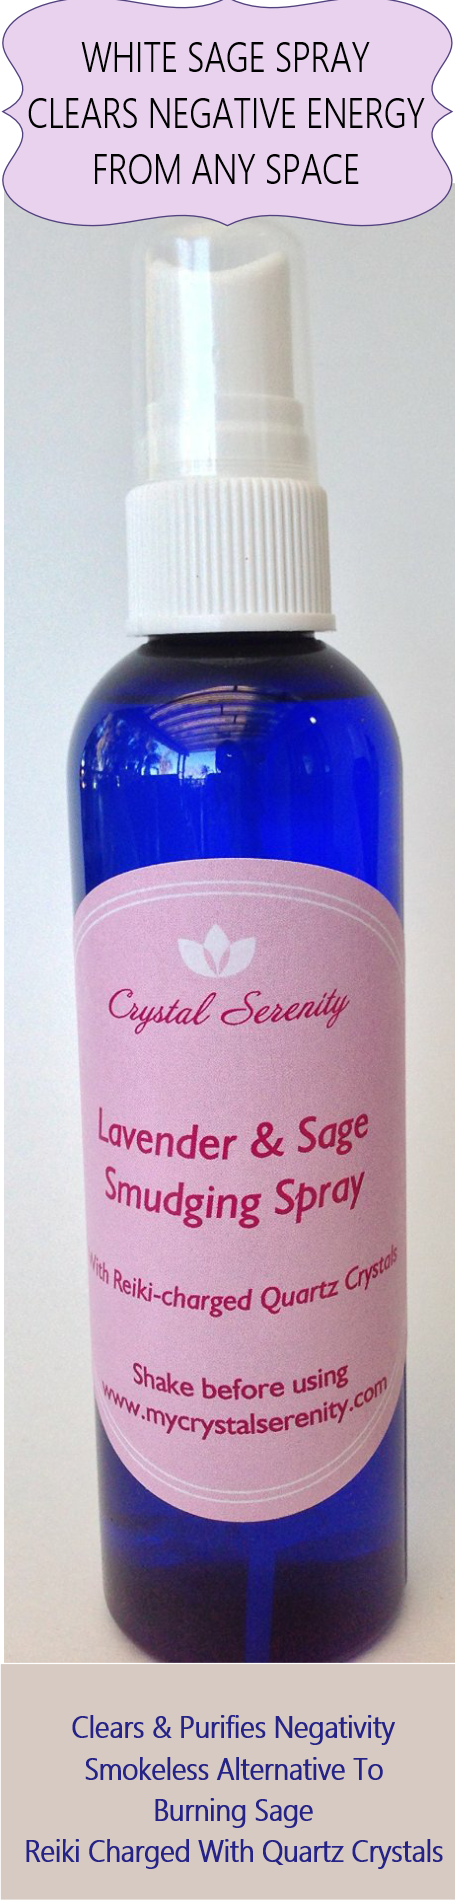 Powerful Way To Clear Negative Energy from Body and Spaces.  Clears and Purifies Negativity.  Smokeless Alternative To Burning Sage